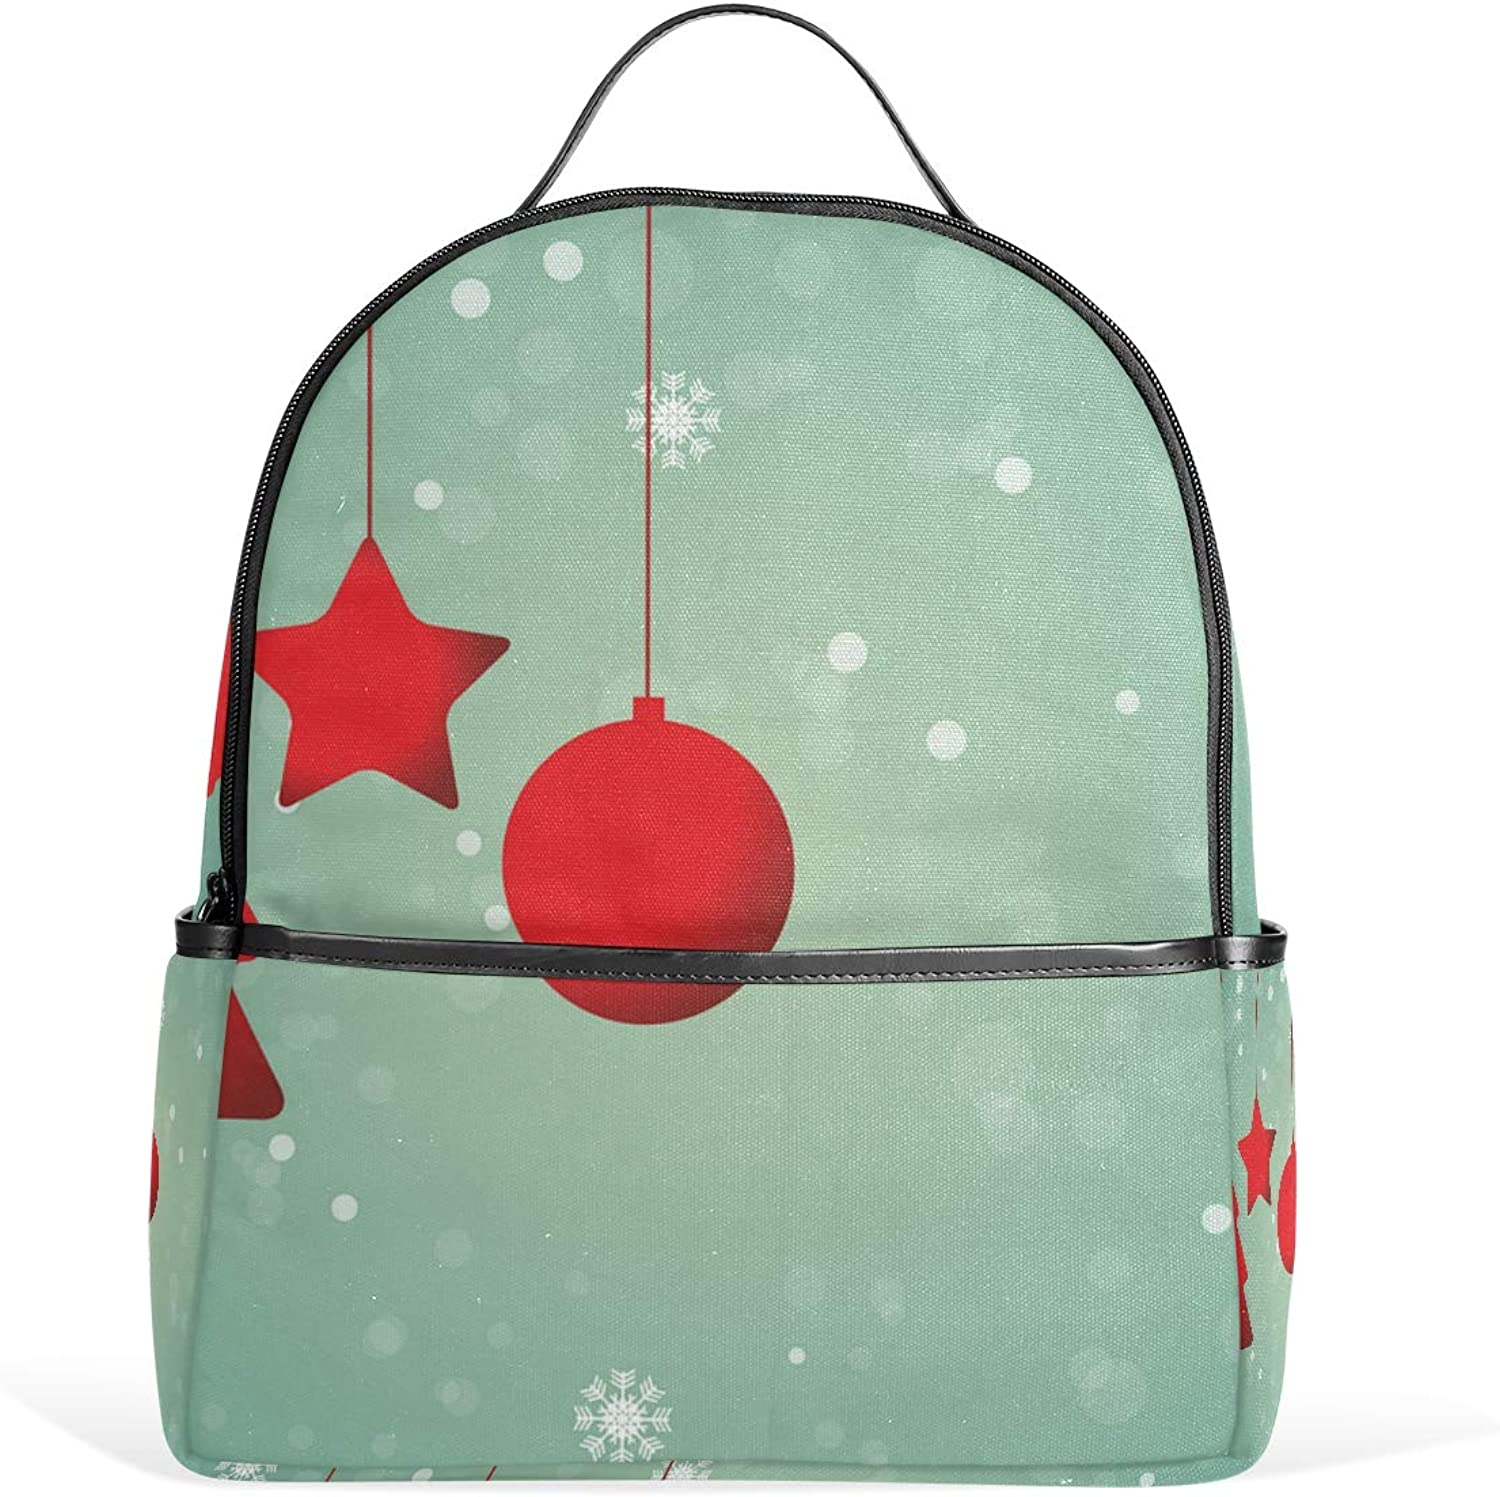 Christmas Ornament Backpack for Men Women Back Pack Bag College Daypacks Teenagers's Travel bagpacks Casual Daypack for Travel